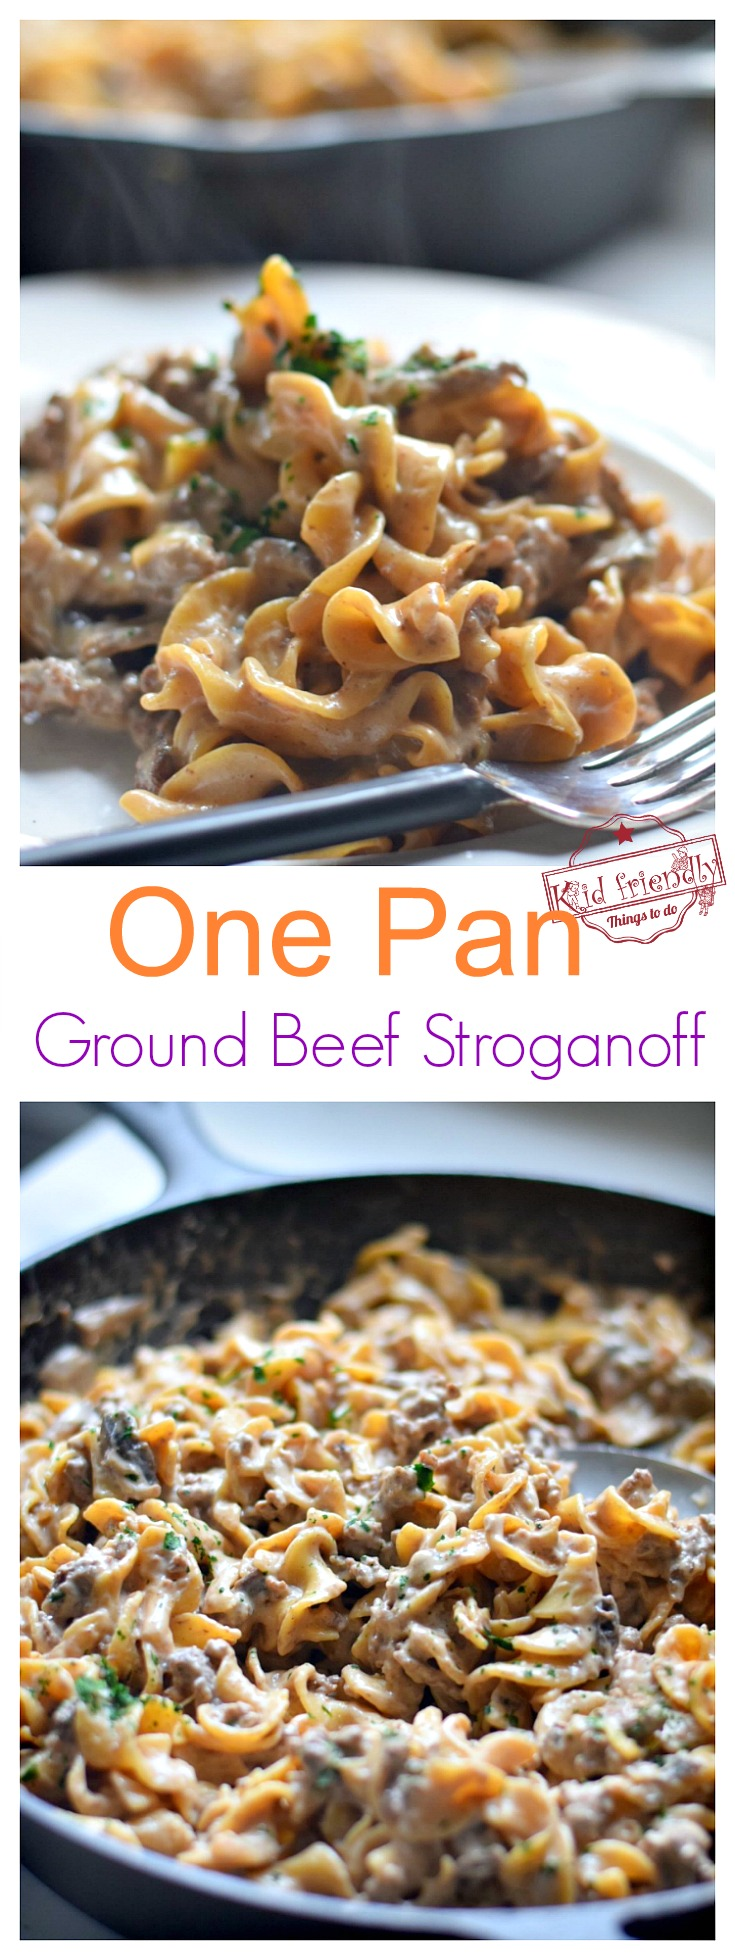 Easy and delicious, creamy one pot Ground Beef Stroganoff made with mushrooms, sour cream and onions. Budget and family friendly. Classic comfort food that's perfect for weeknight family dinner.